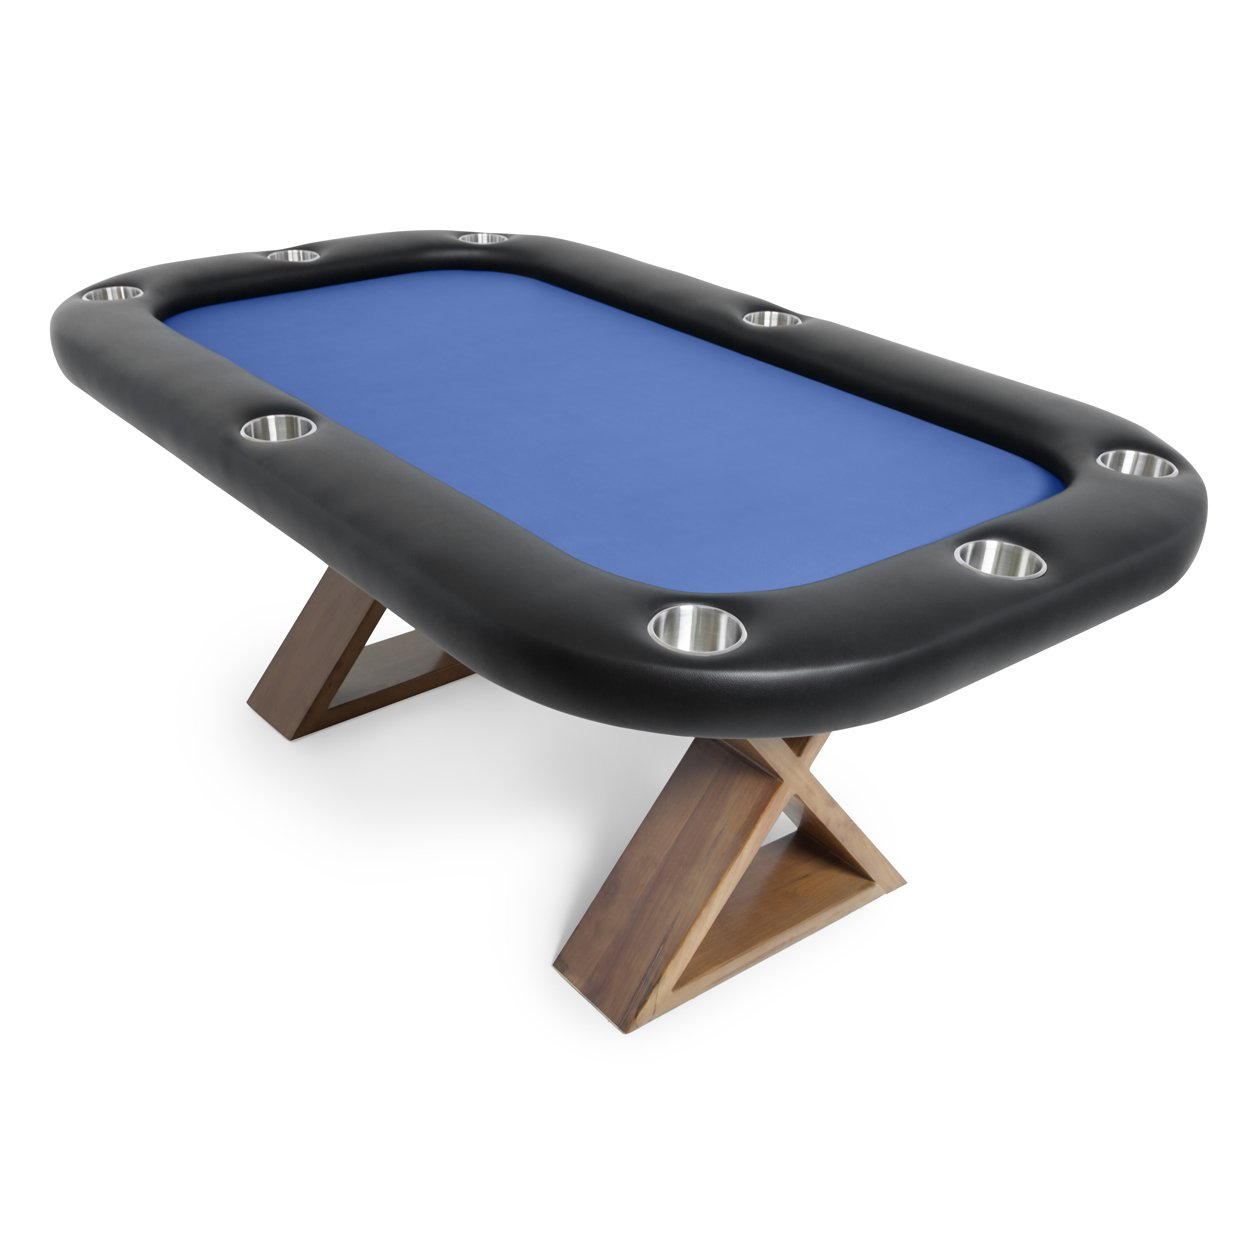 BBO Poker Helmsley Poker Table for 8 Players with Blue Felt Playing Surface, 72 x 46-Inch, Includes Matching Dining Top by BBO Poker